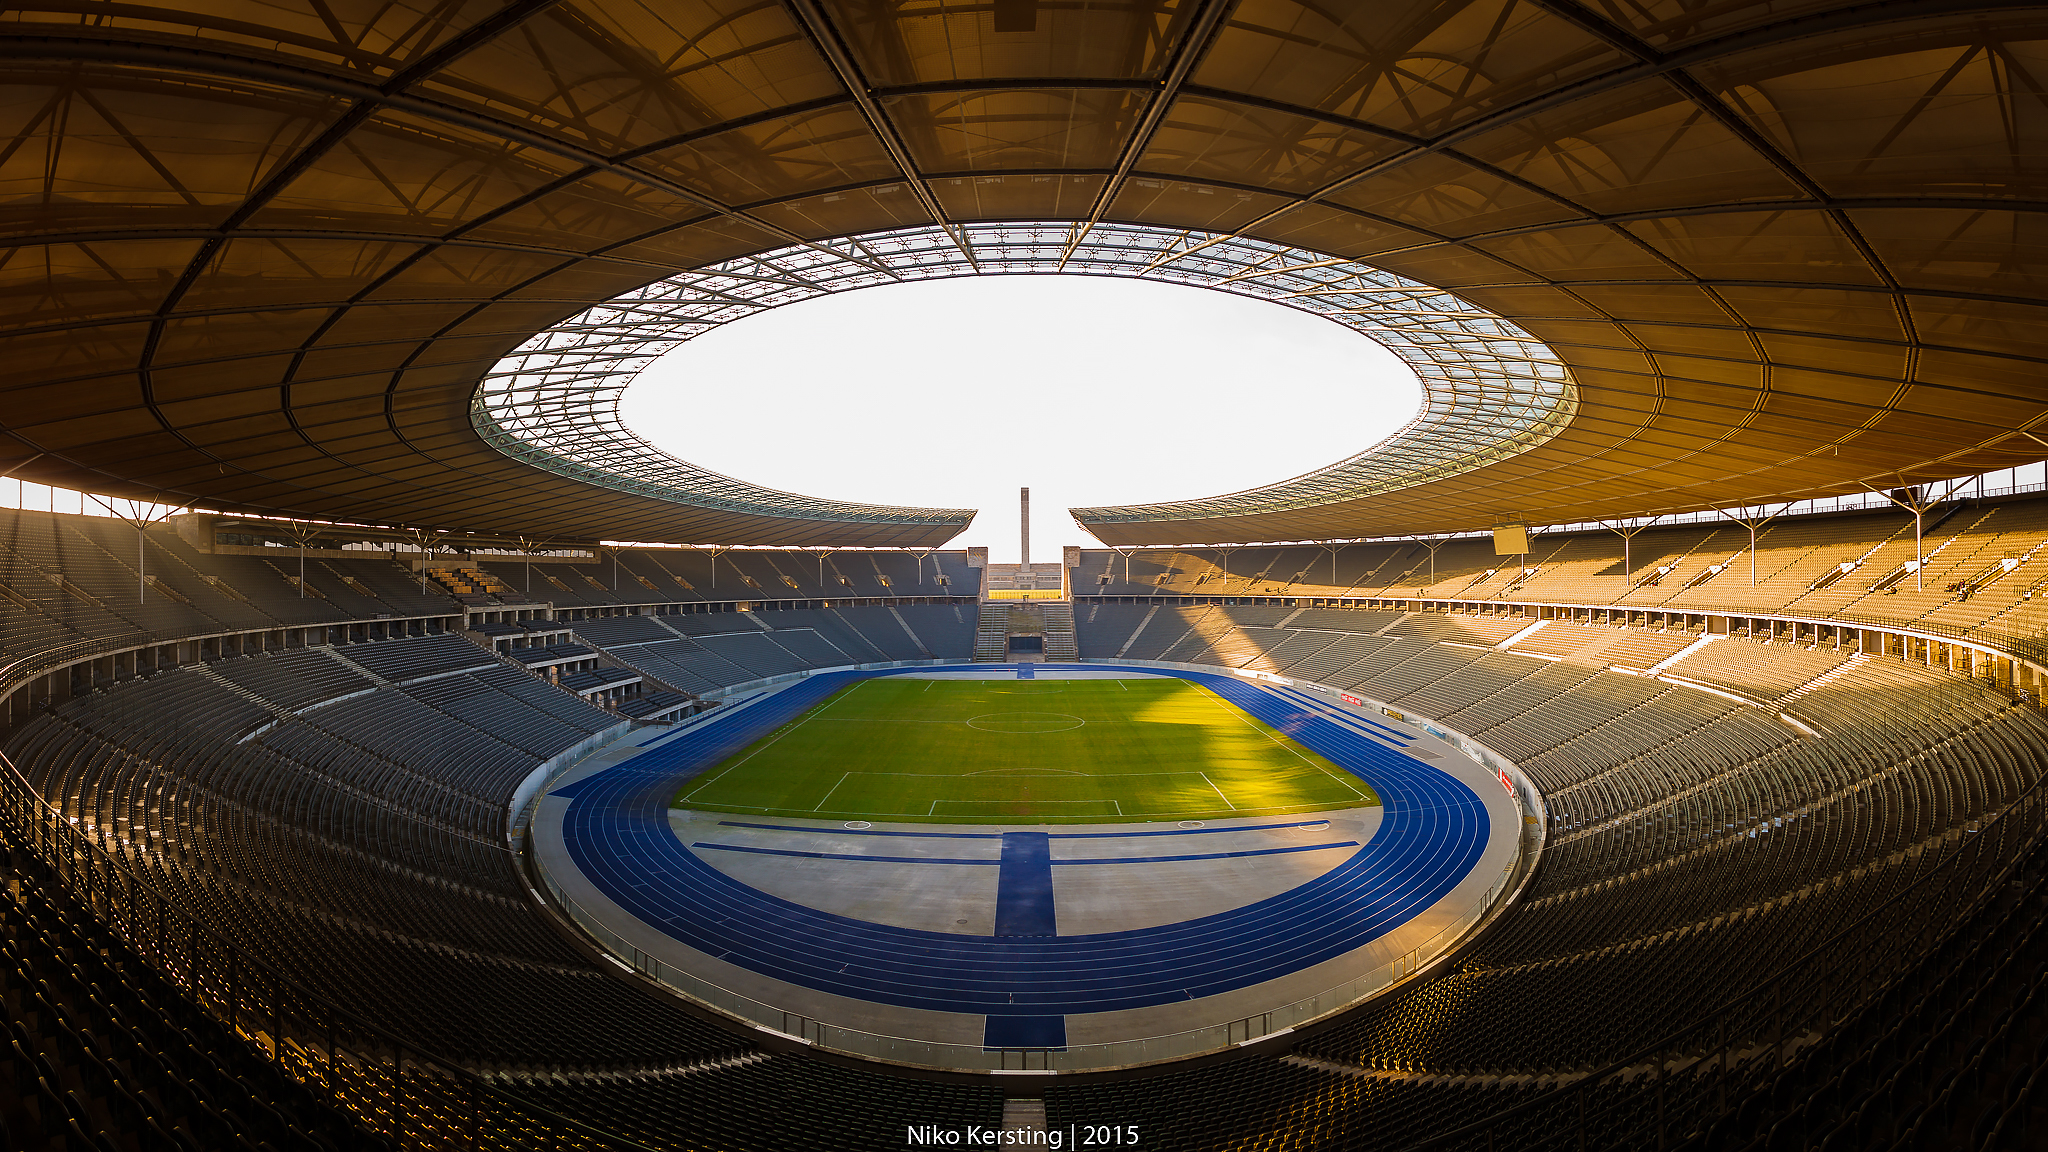 Olympiastadion Berlin, Germany